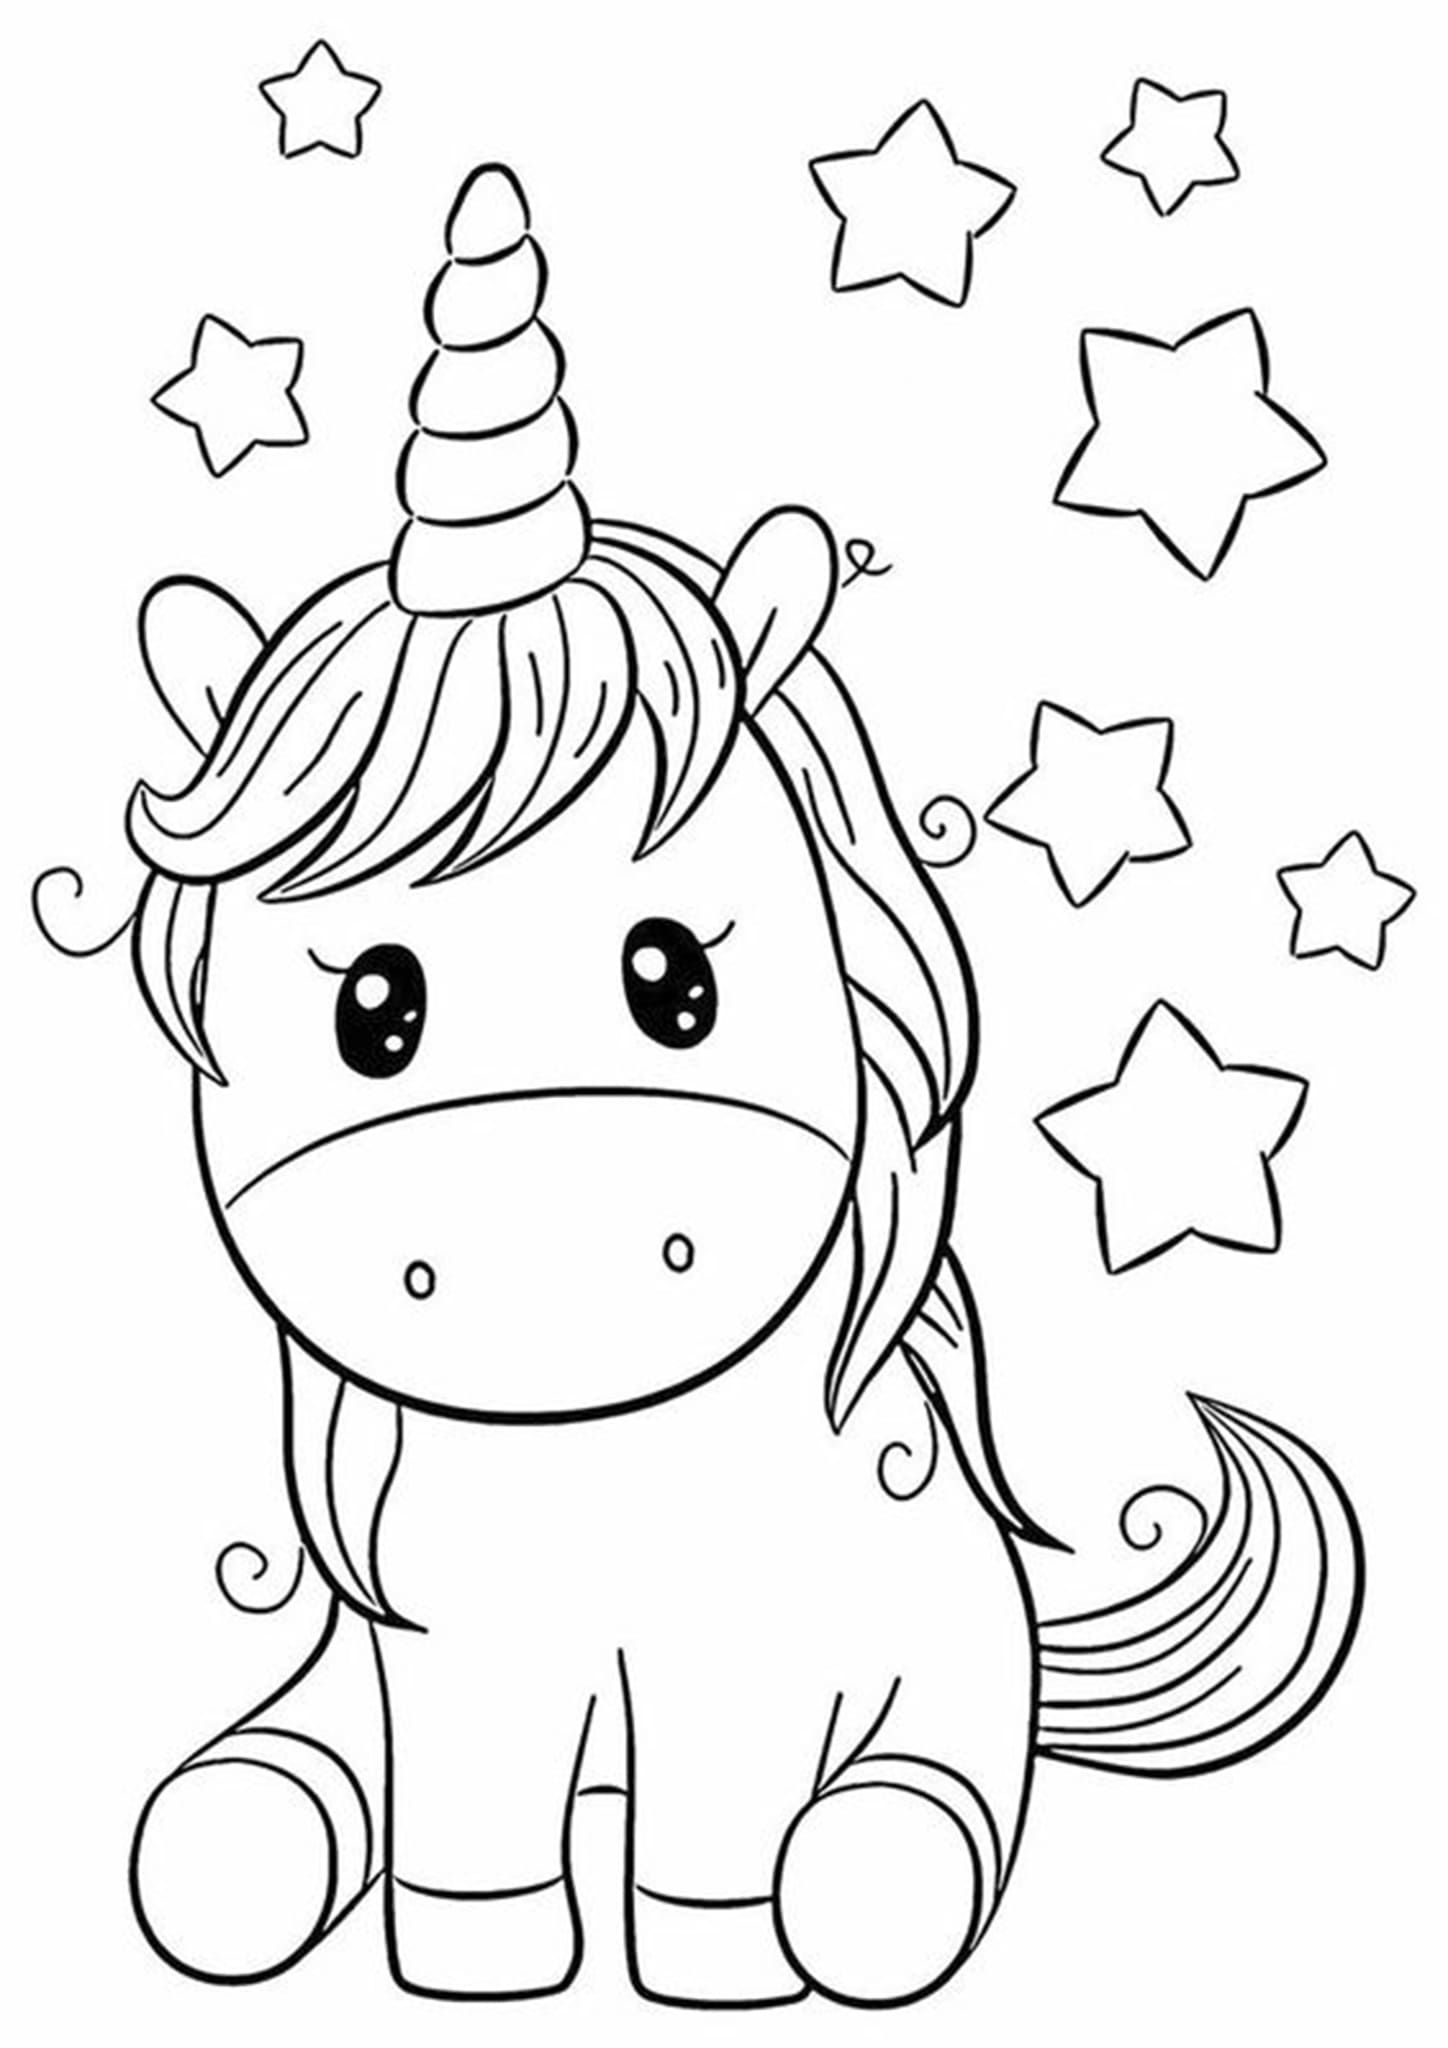 Free Easy To Print Baby Animal Coloring Pages In 2020 Mermaid Coloring Pages Unicorn Coloring Pages Baby Coloring Pages